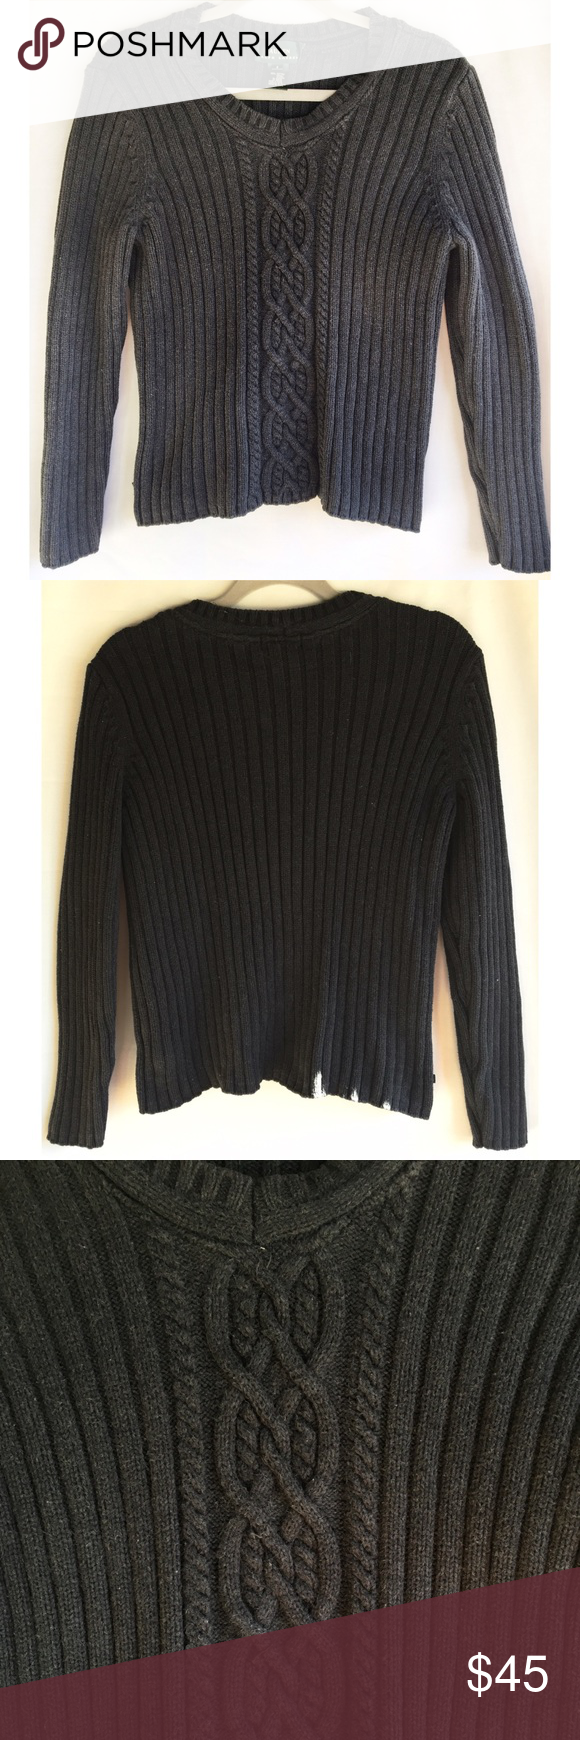 LAUREN RALPH LAUREN  Size S Sweater Actual color is charcoal grey Long sleeve Vneck Twist design down the front Thick  warm 100cotton Hanging measurements Center of back...